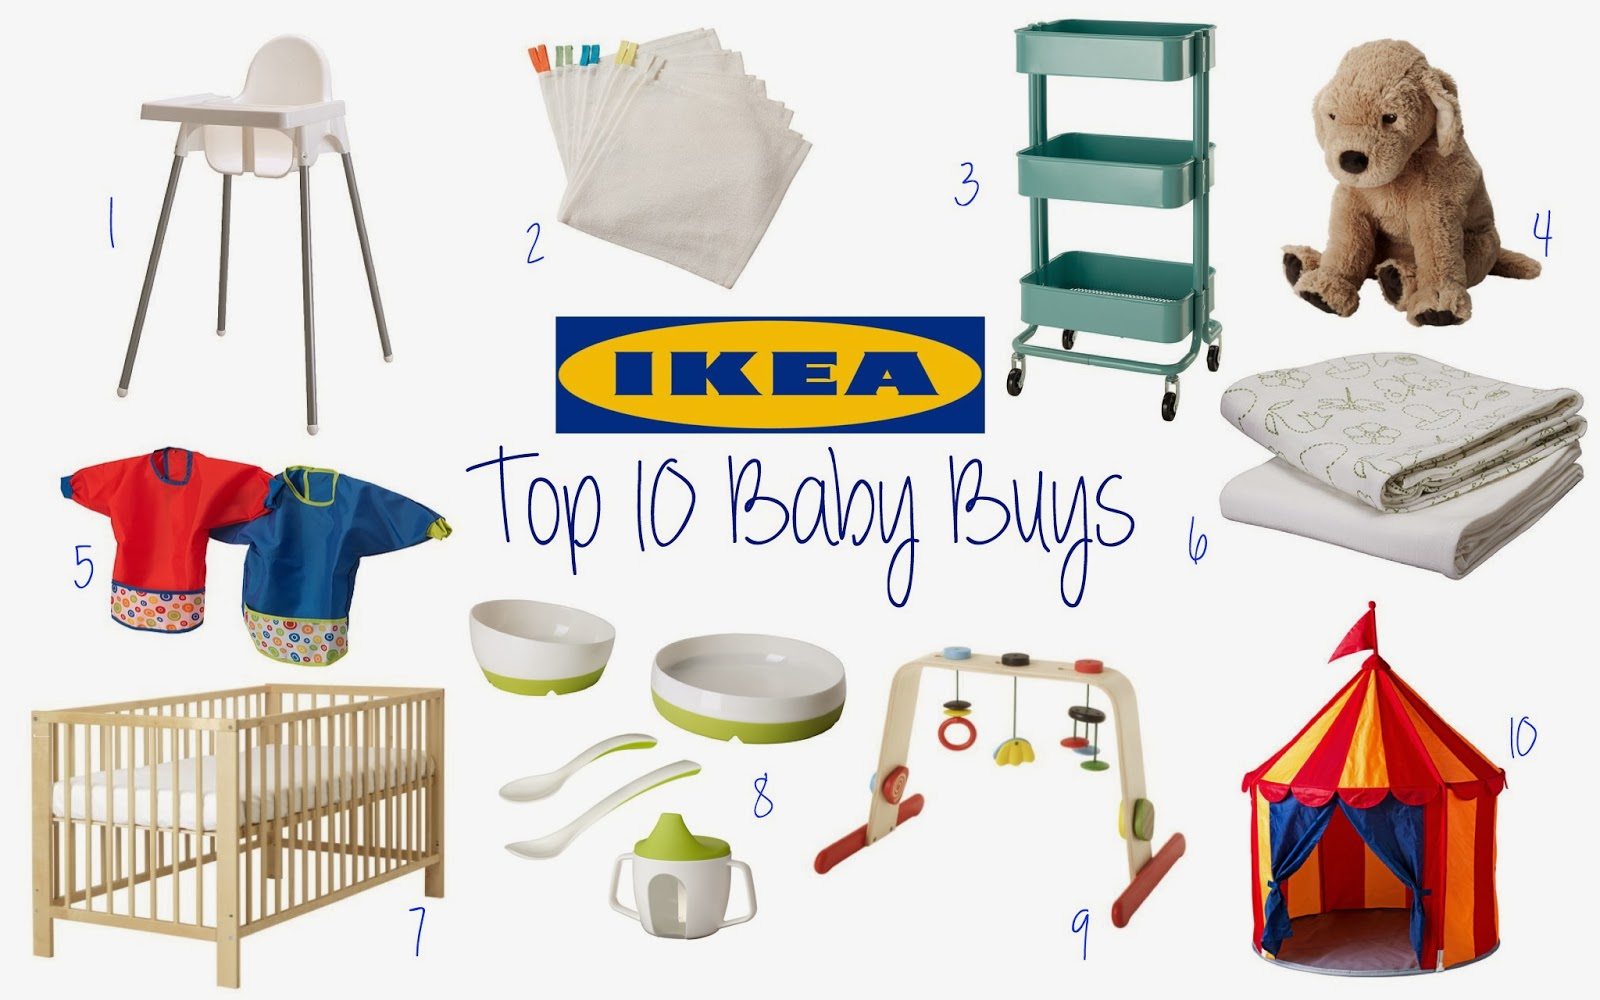 in ikea under 60 ikea baby buys for under 60 essential items